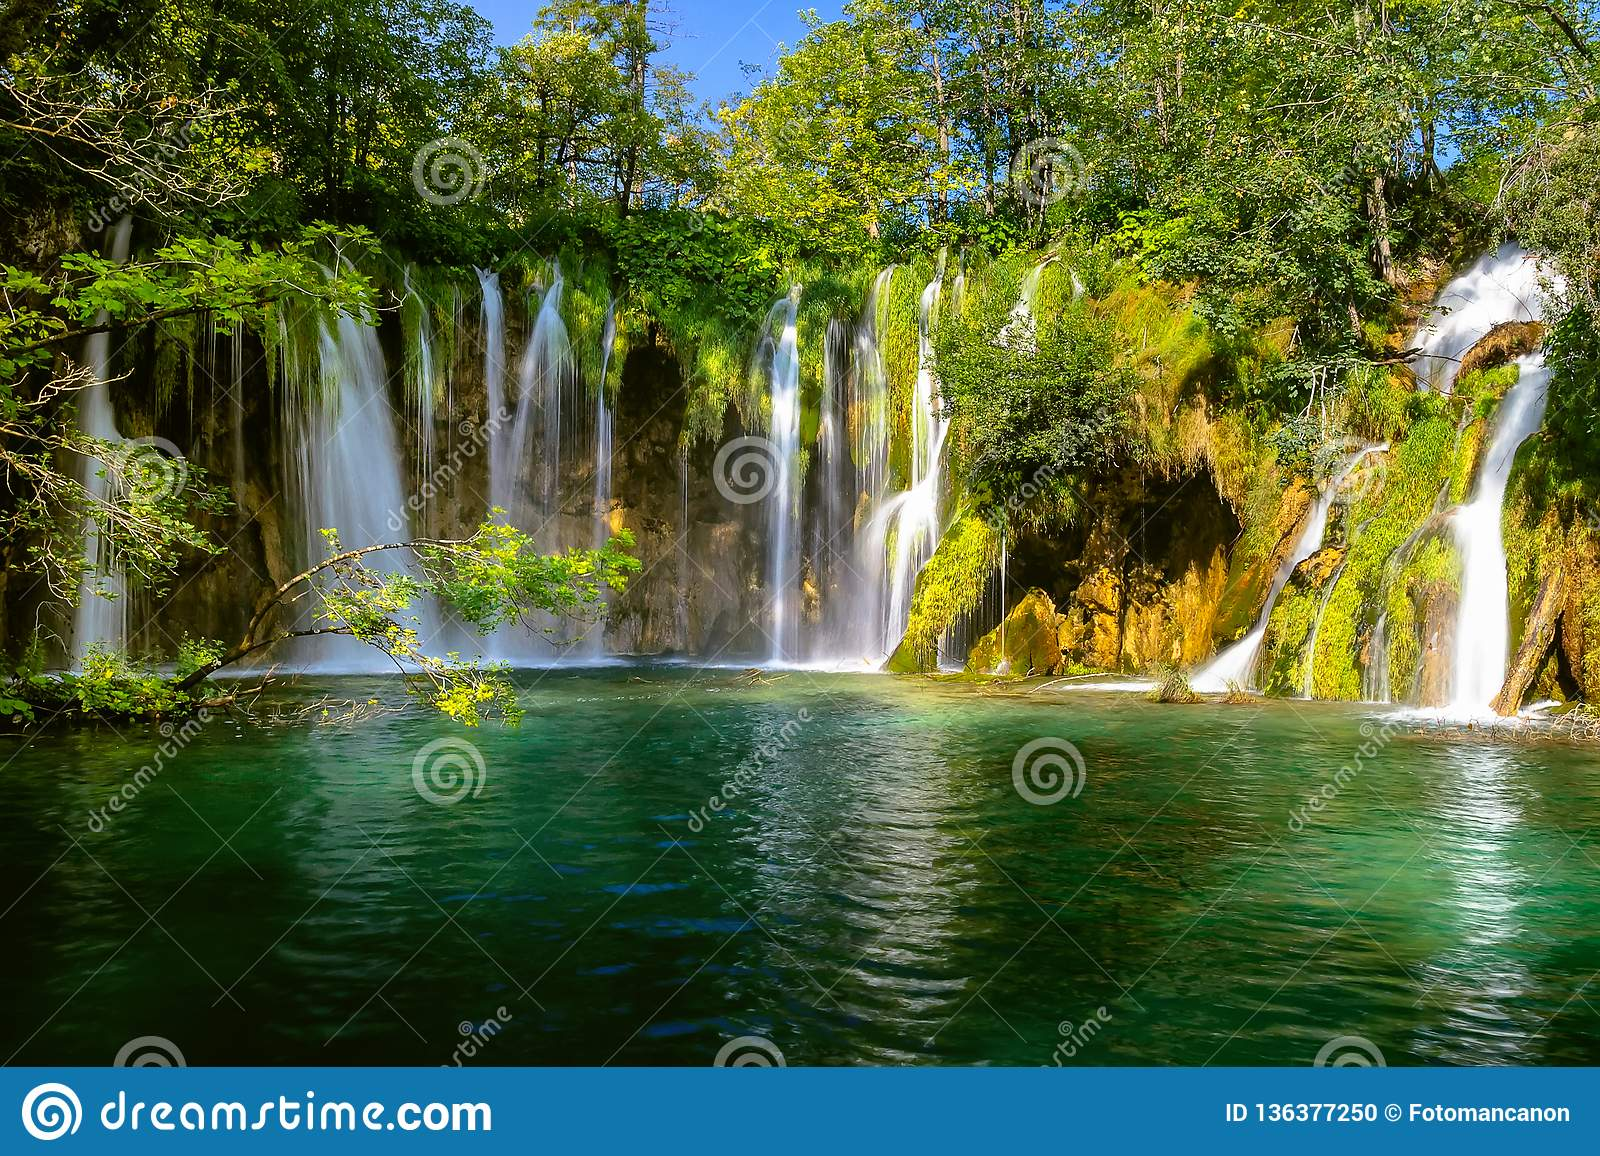 Beautiful Waterfall In Plitvice Lakes National Park Croatia